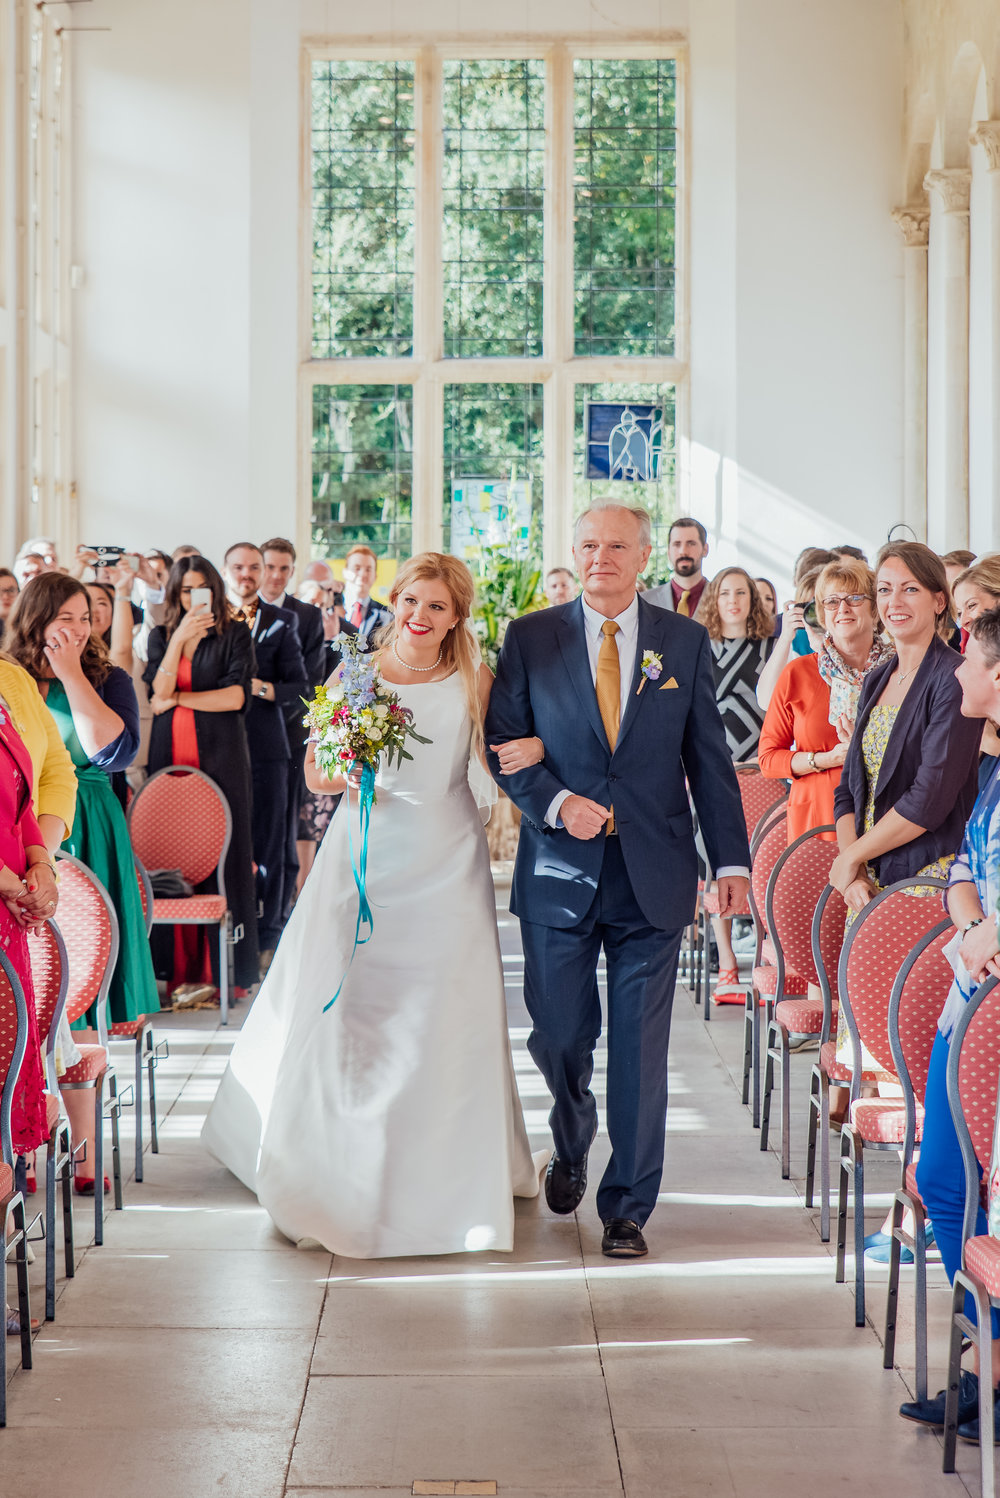 Bride and her father walking down the aisle at Highcliffe Castle Dorset - Amy James Photography - documentary wedding photographer for Hampshire Dorset and Surrey